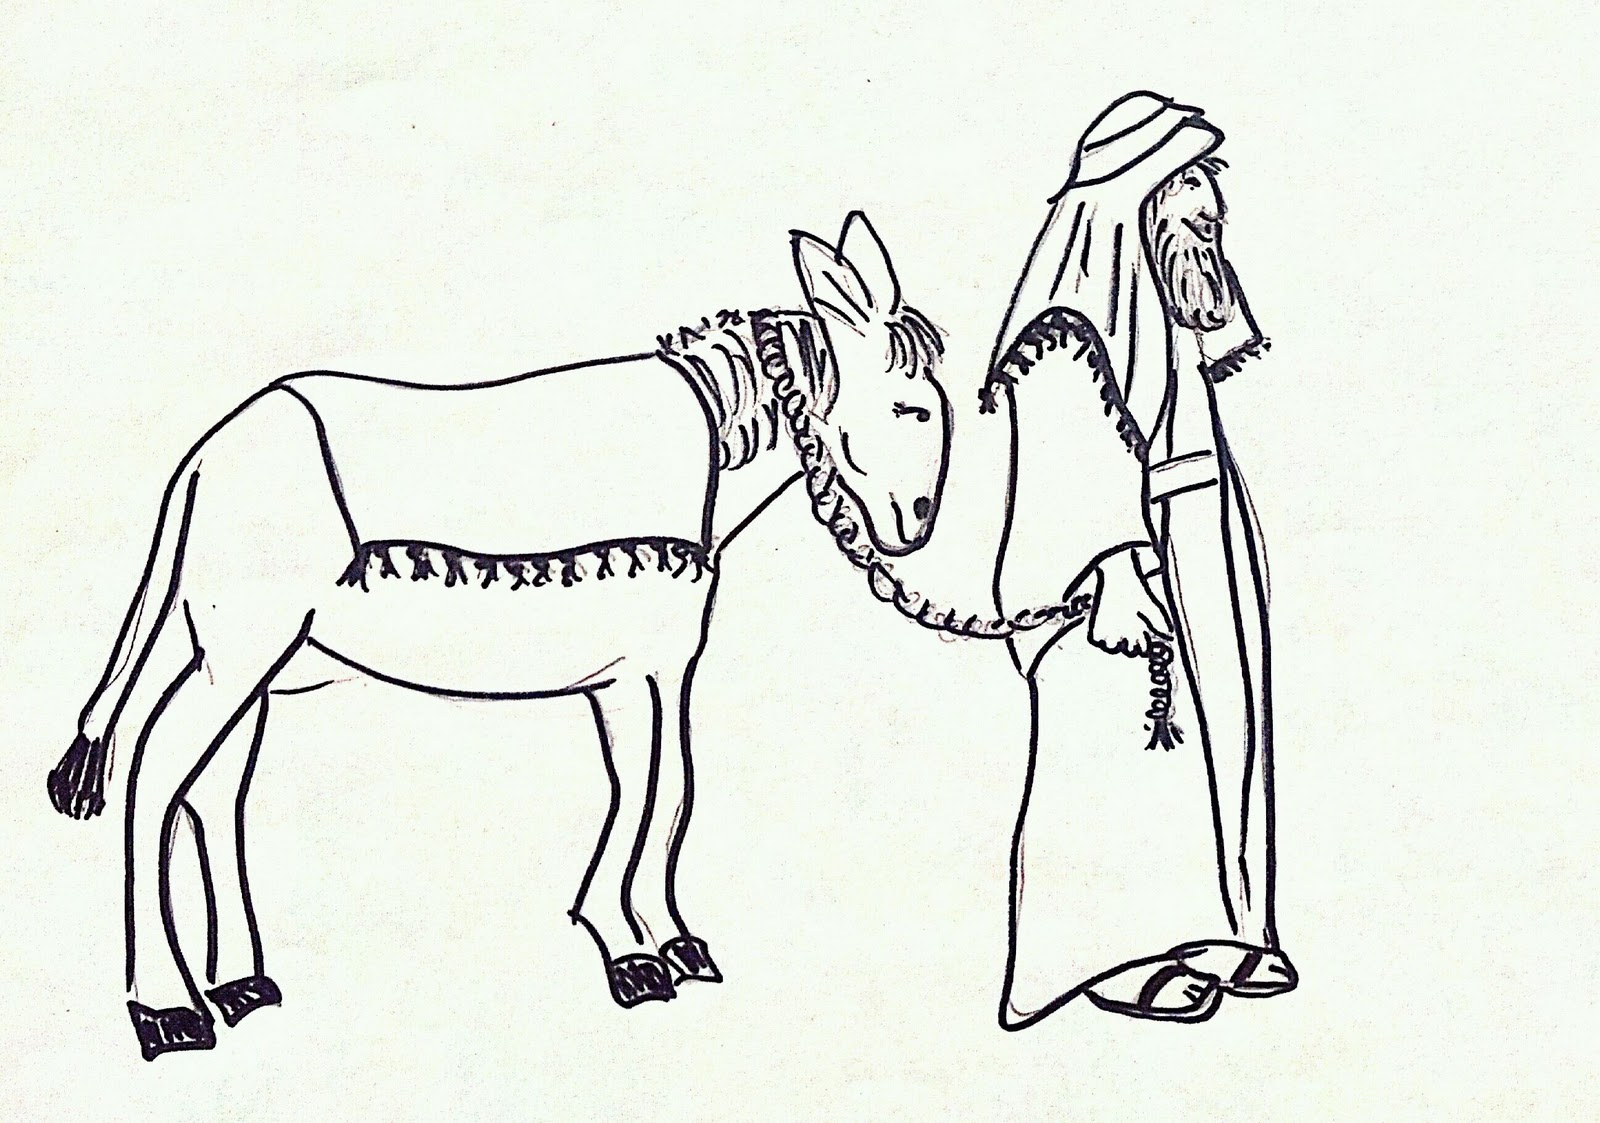 joseph mary coloring pages - photo#20